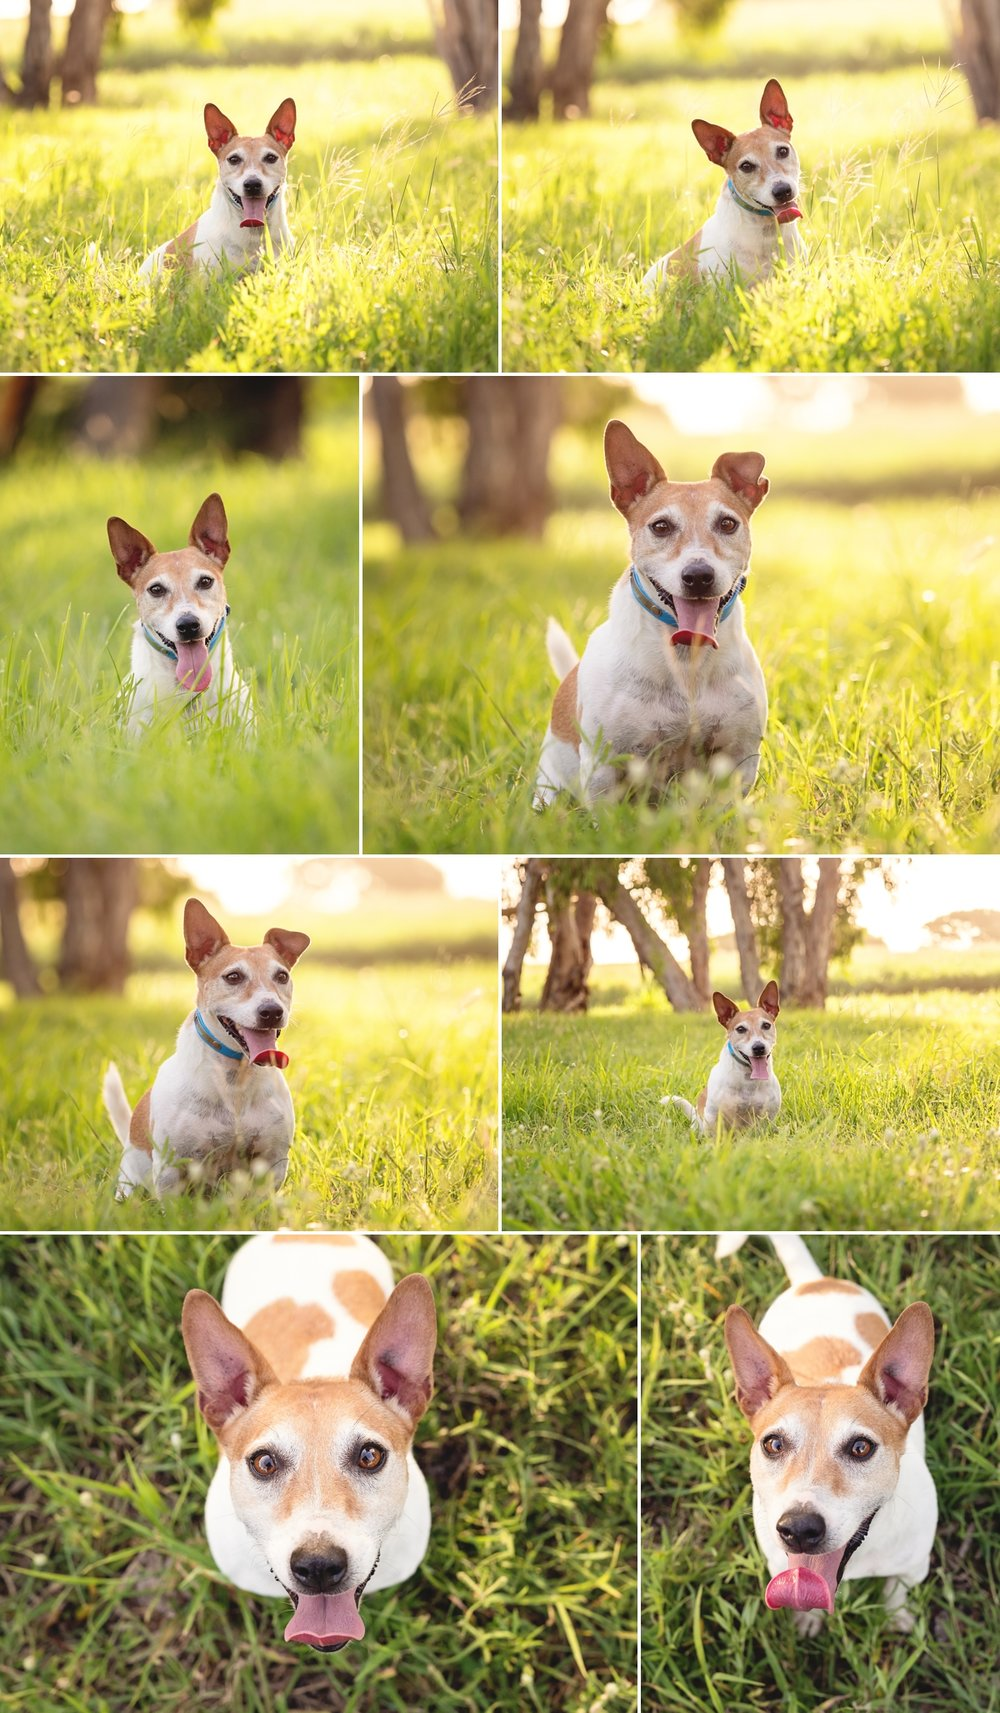 Buddy-the-Jack-Russell-at-Illawong-Beach-Mackay-Gallery-2.jpg